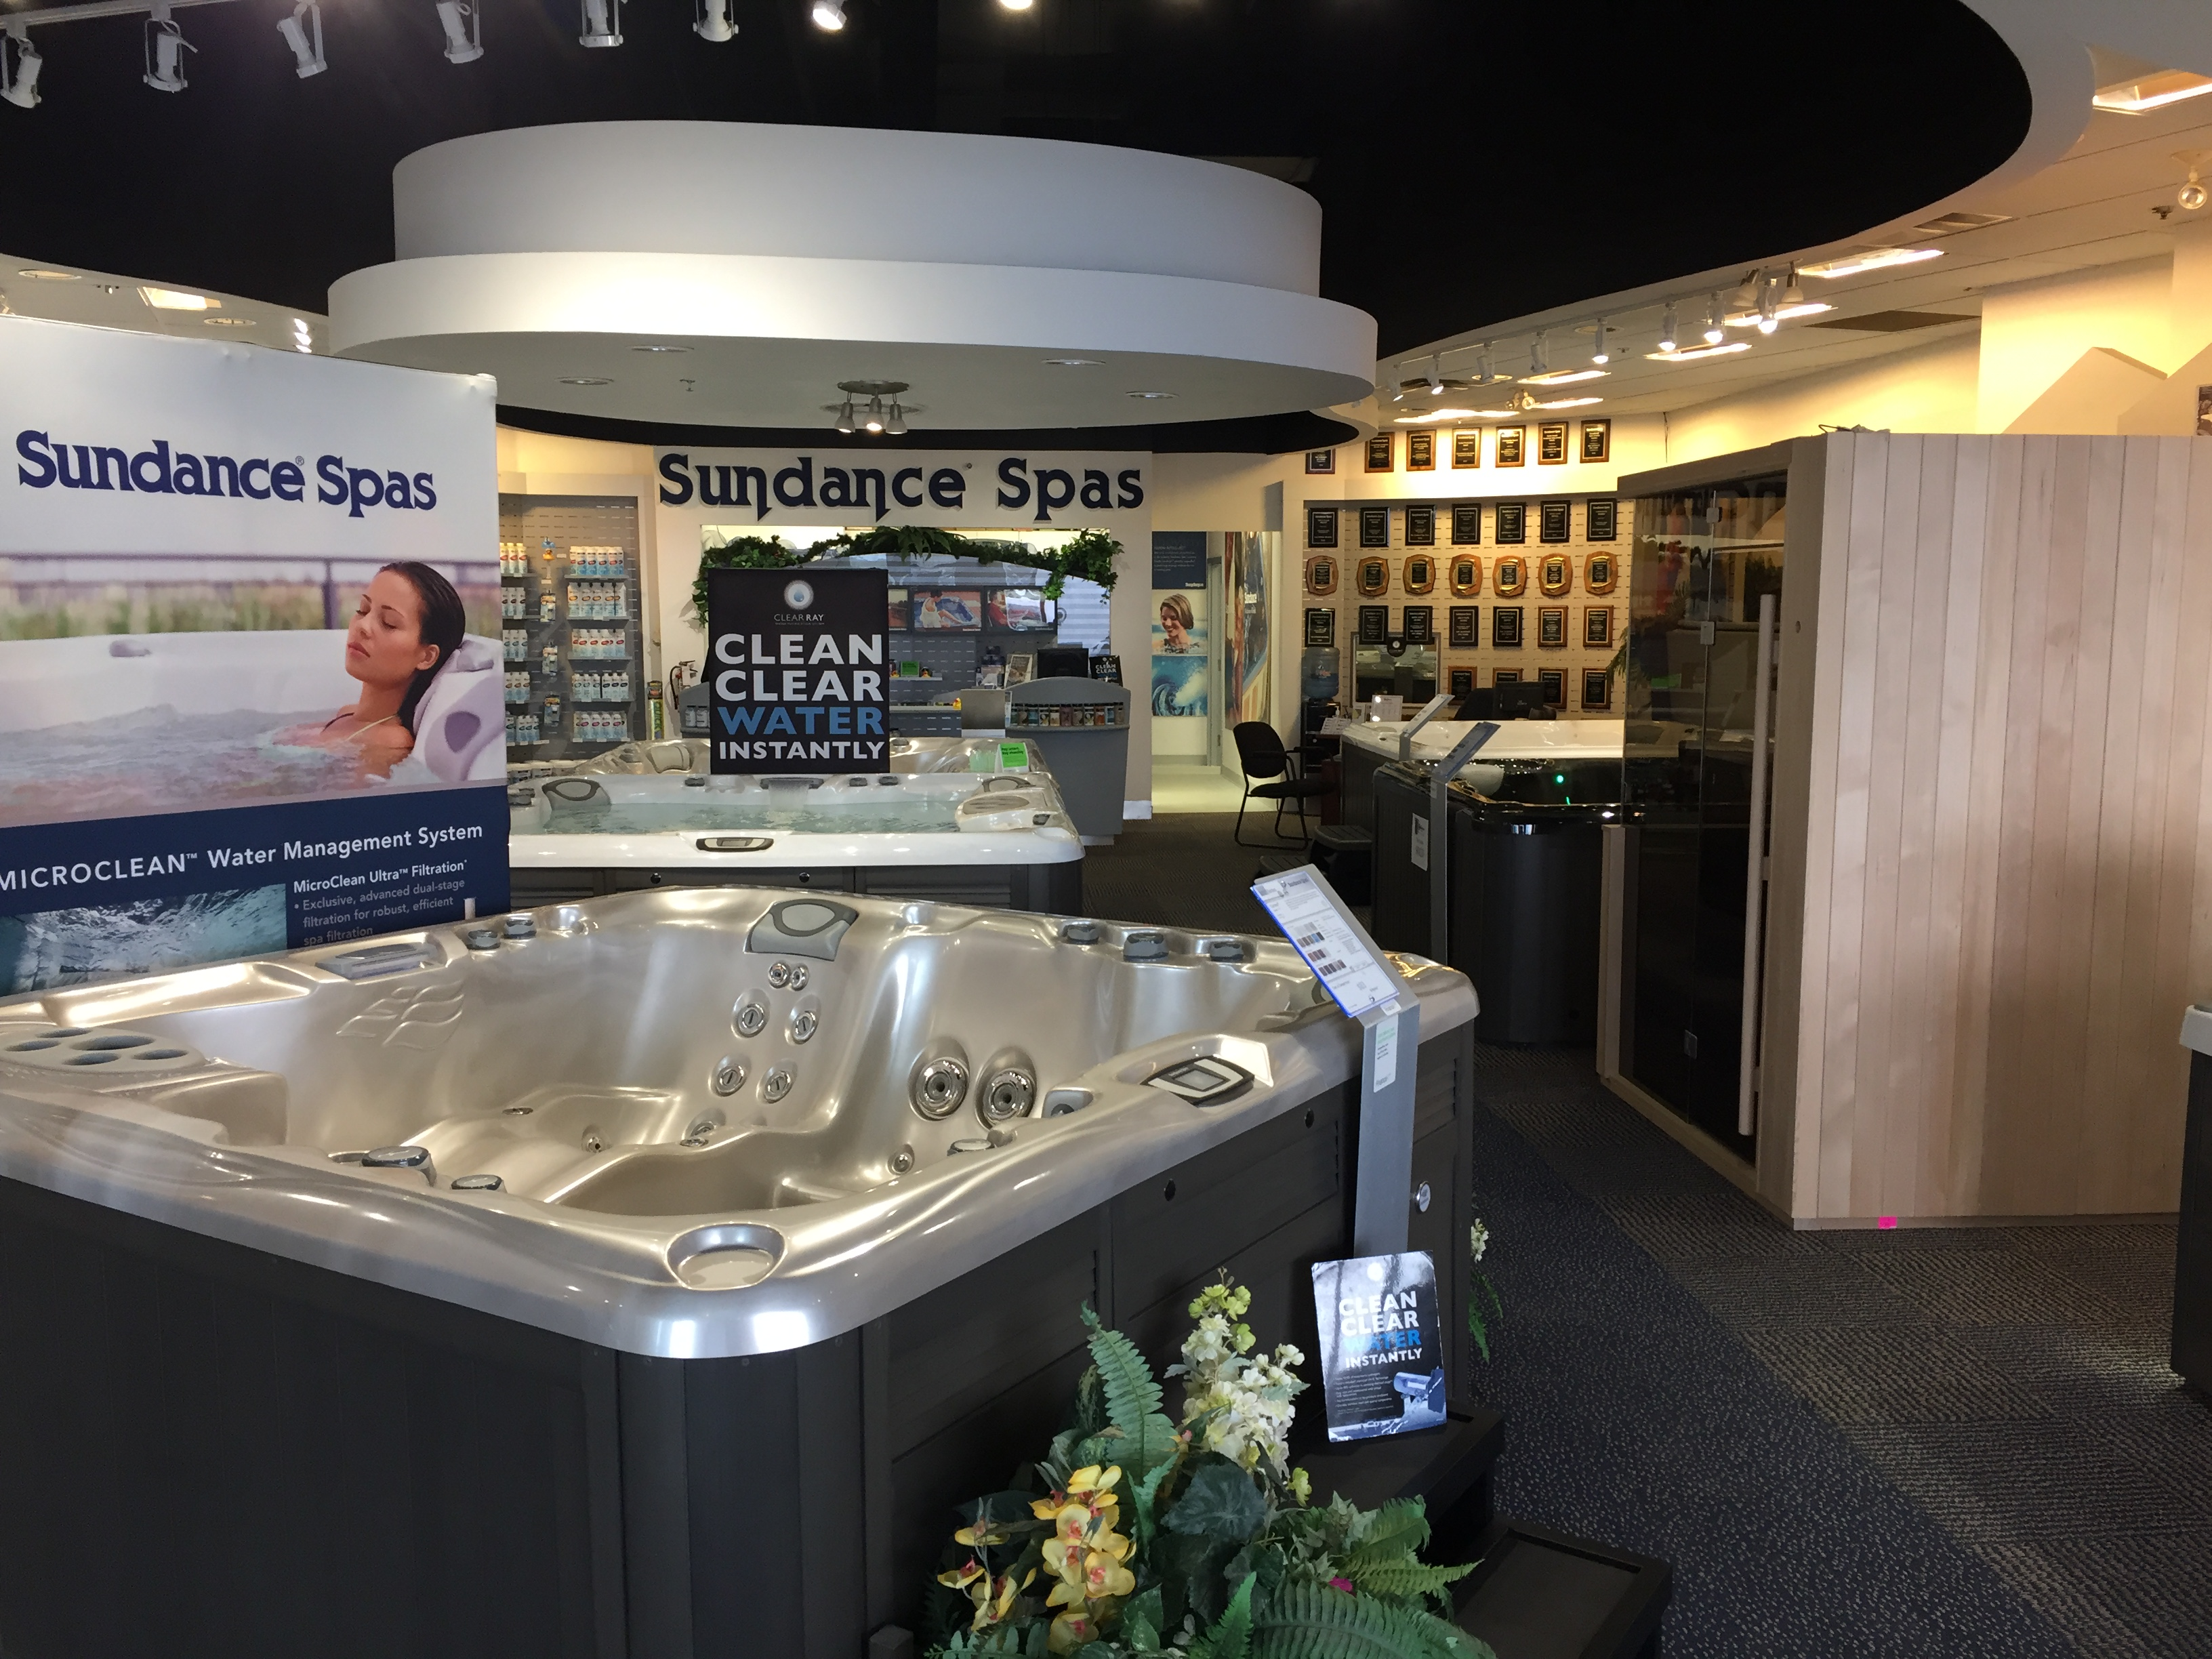 Moderne How Much Does A Hot Tub Cost? | Blog | The Sundance Spa Store YB-54